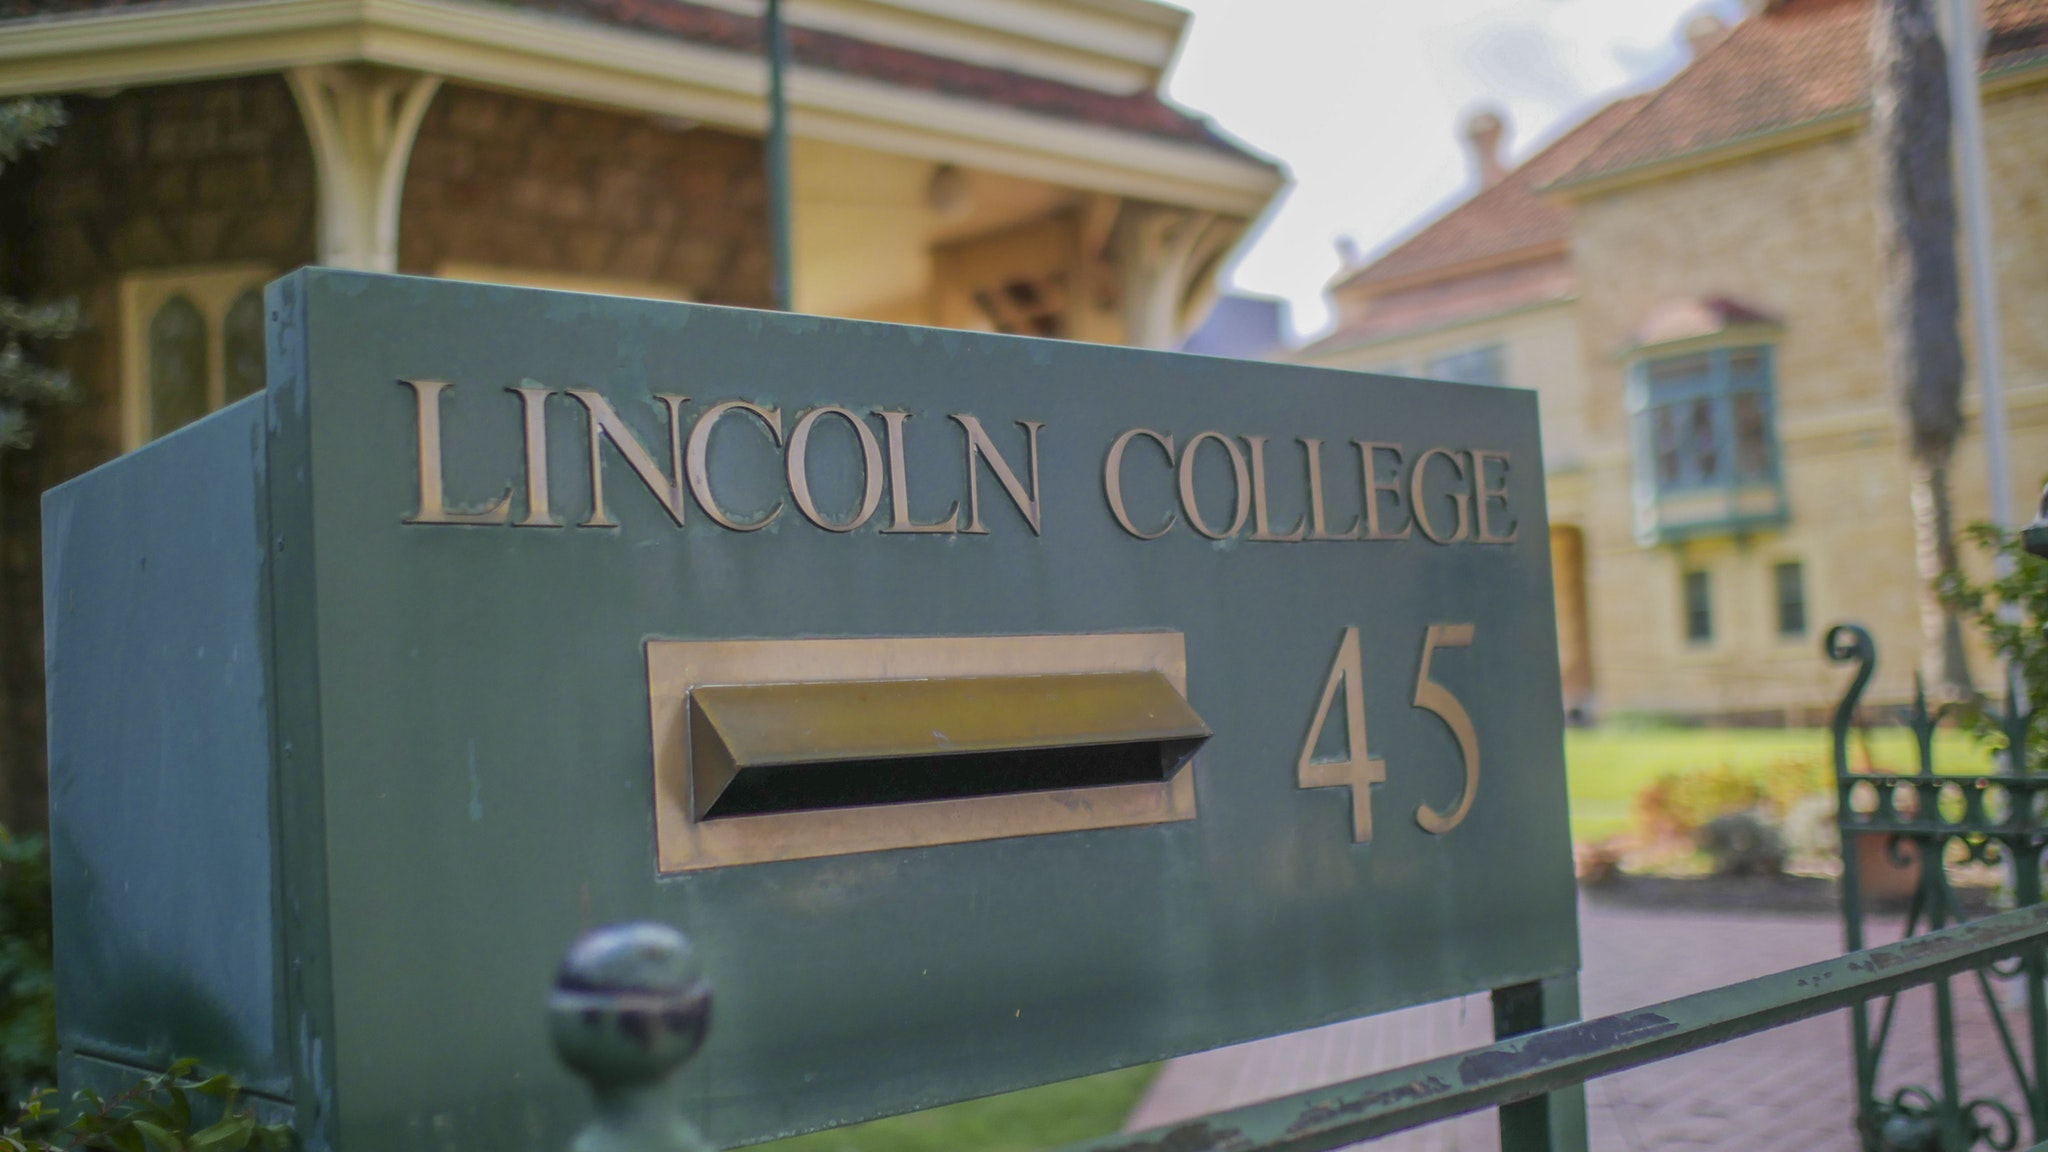 Lincoln College Logo and Images